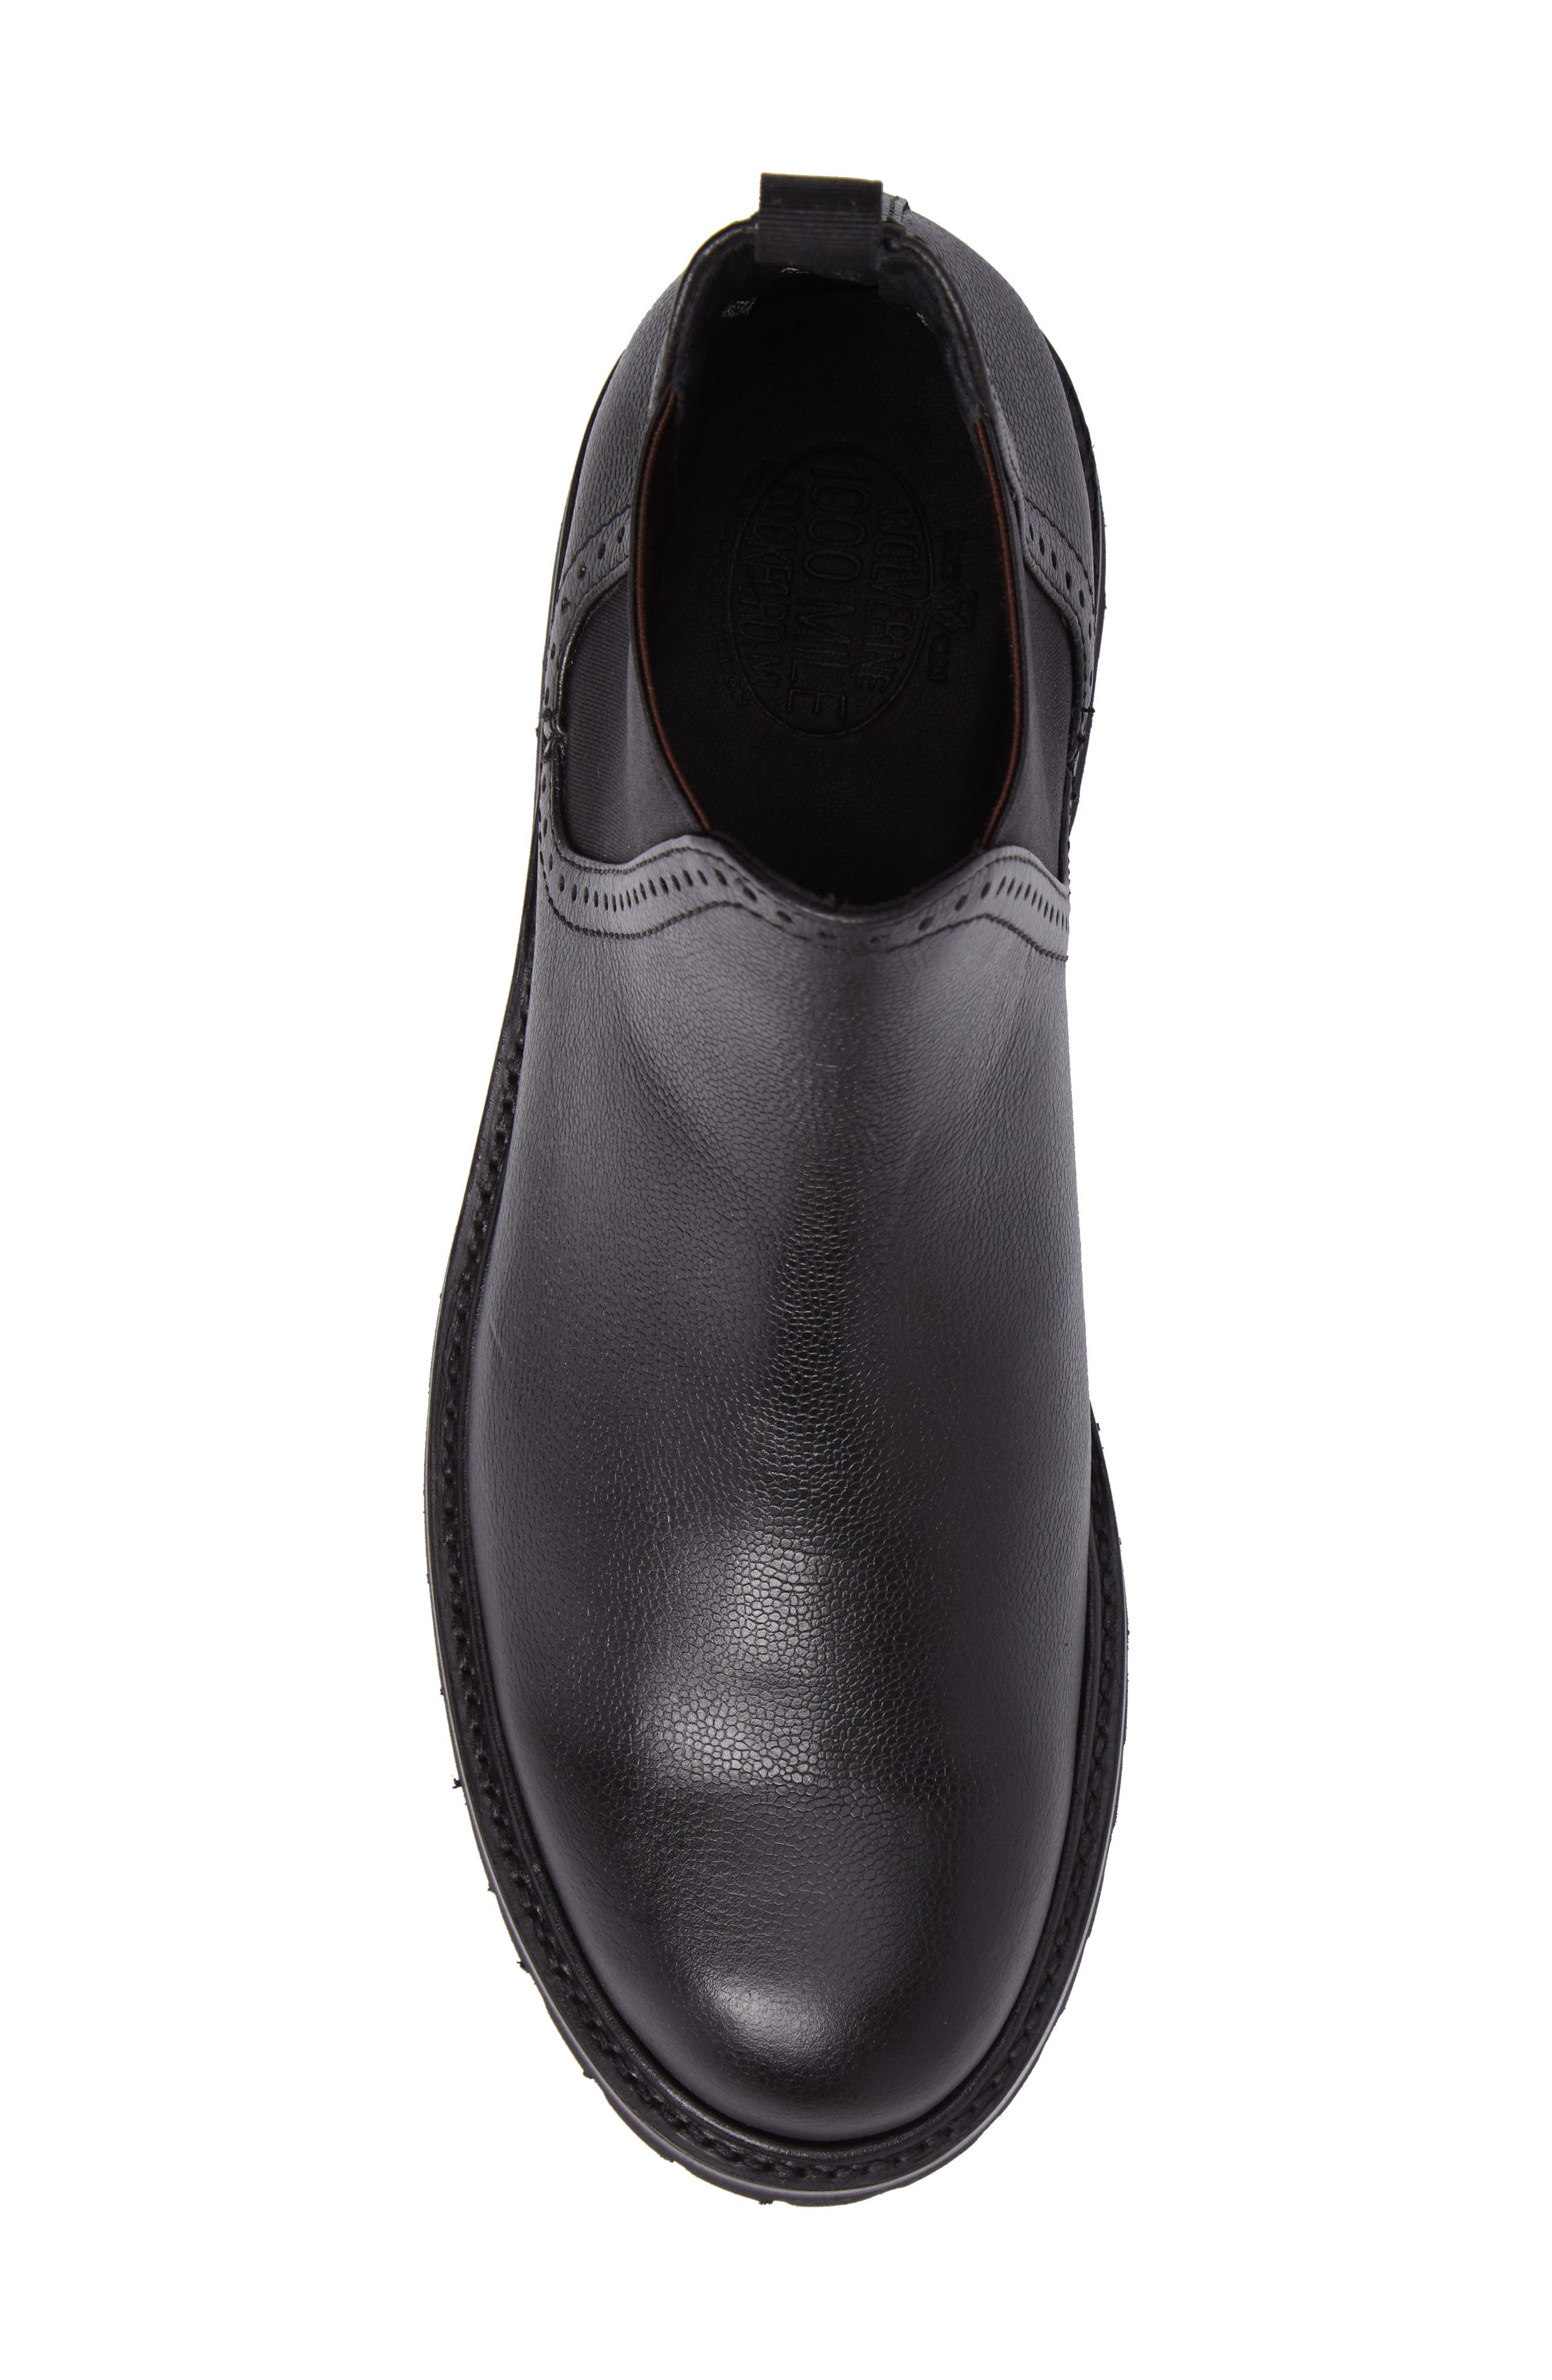 Cromwell Chelsea Boot,                             Alternate thumbnail 5, color,                             001